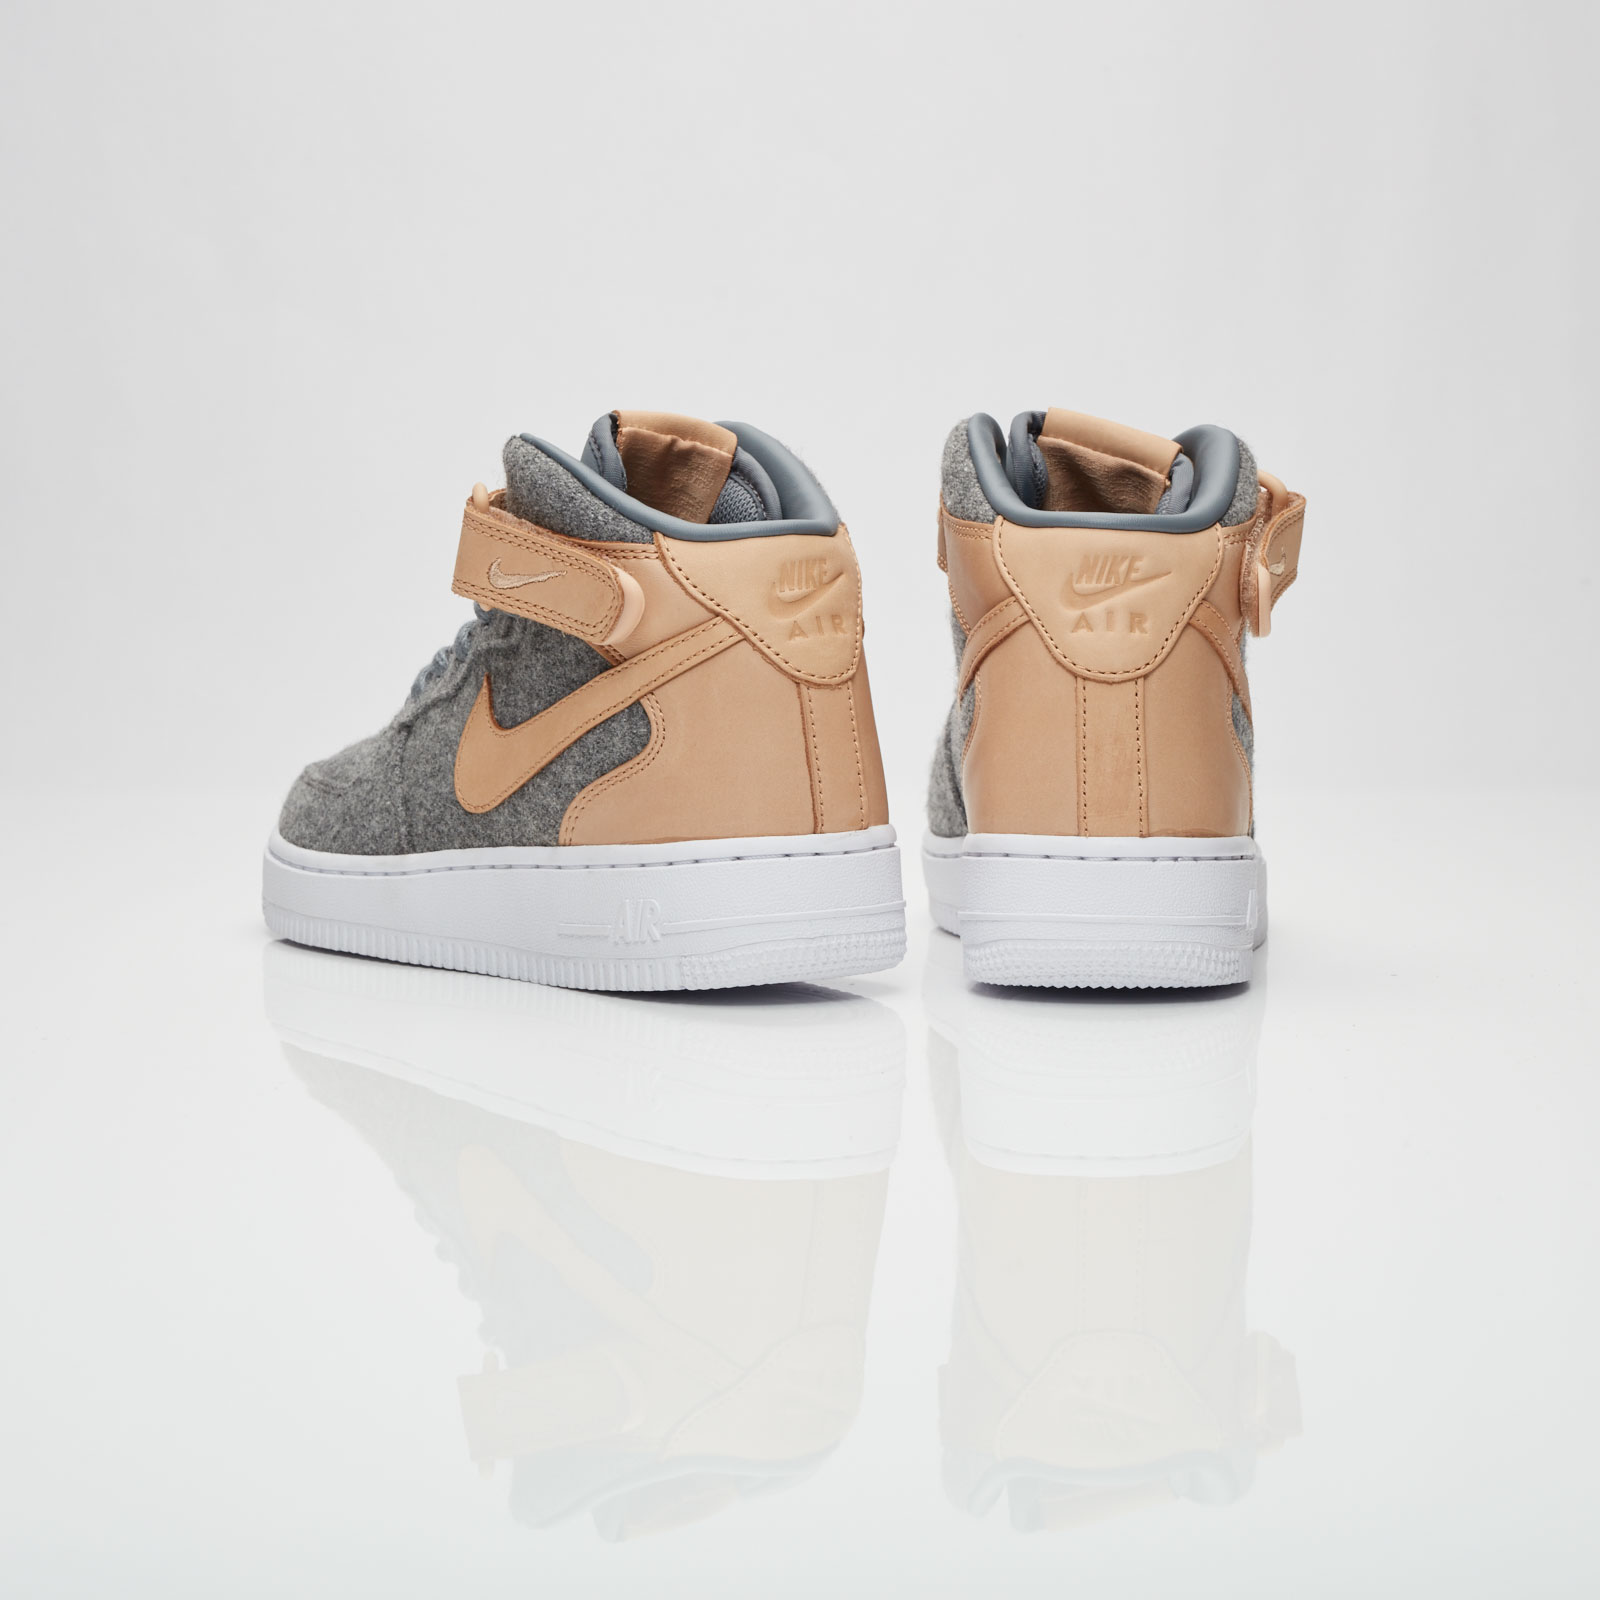 the best attitude 63c32 ee004 Nike Wmns Air Force 1 07 Mid Leather Premium - 857666-001 - Sneakersnstuff    sneakers   streetwear online since 1999